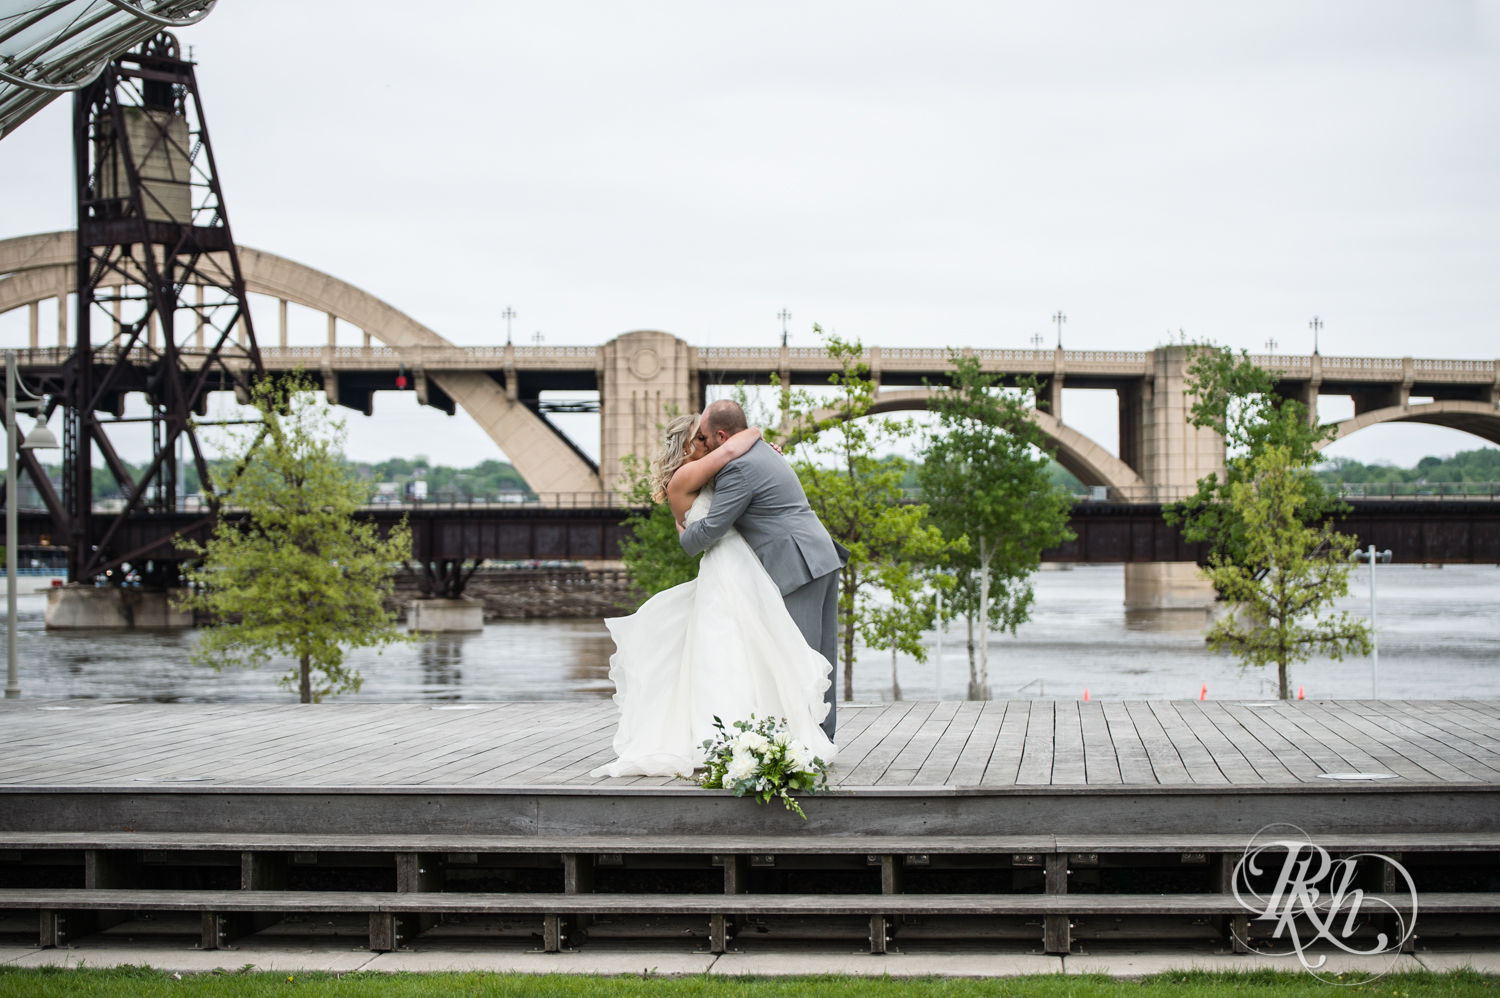 Shannon and Brian - Minnesota Wedding Photography - Raspberry Island - Minnesota Boat Club - RKH Images - Blog  (38 of 60).jpg